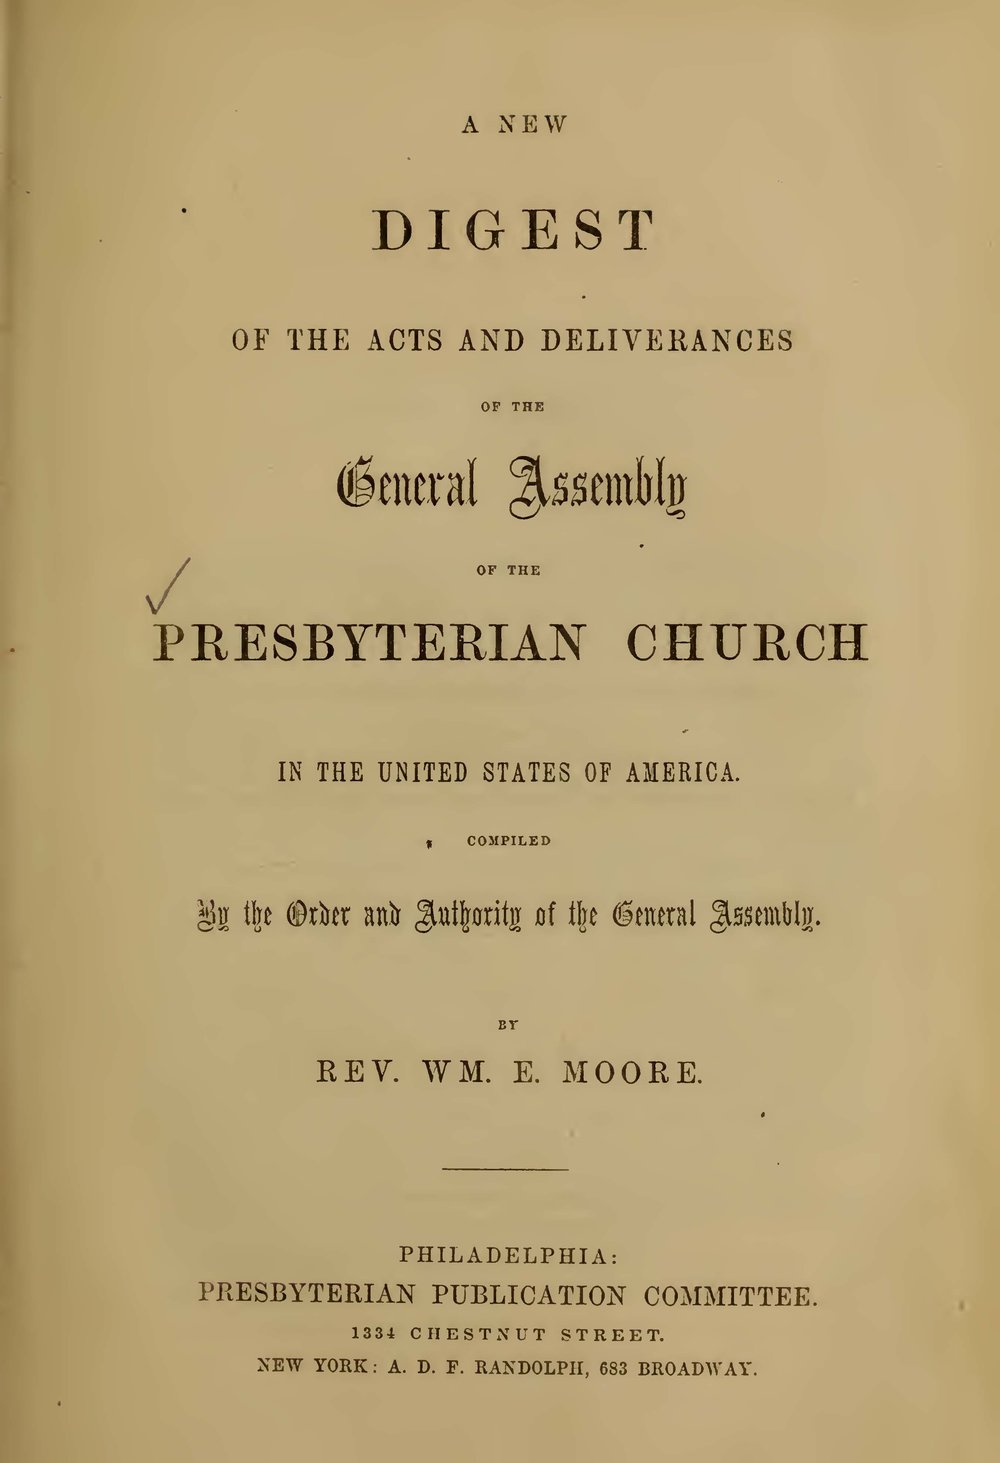 Moore, William Eves, A New Digest Title Page.jpg